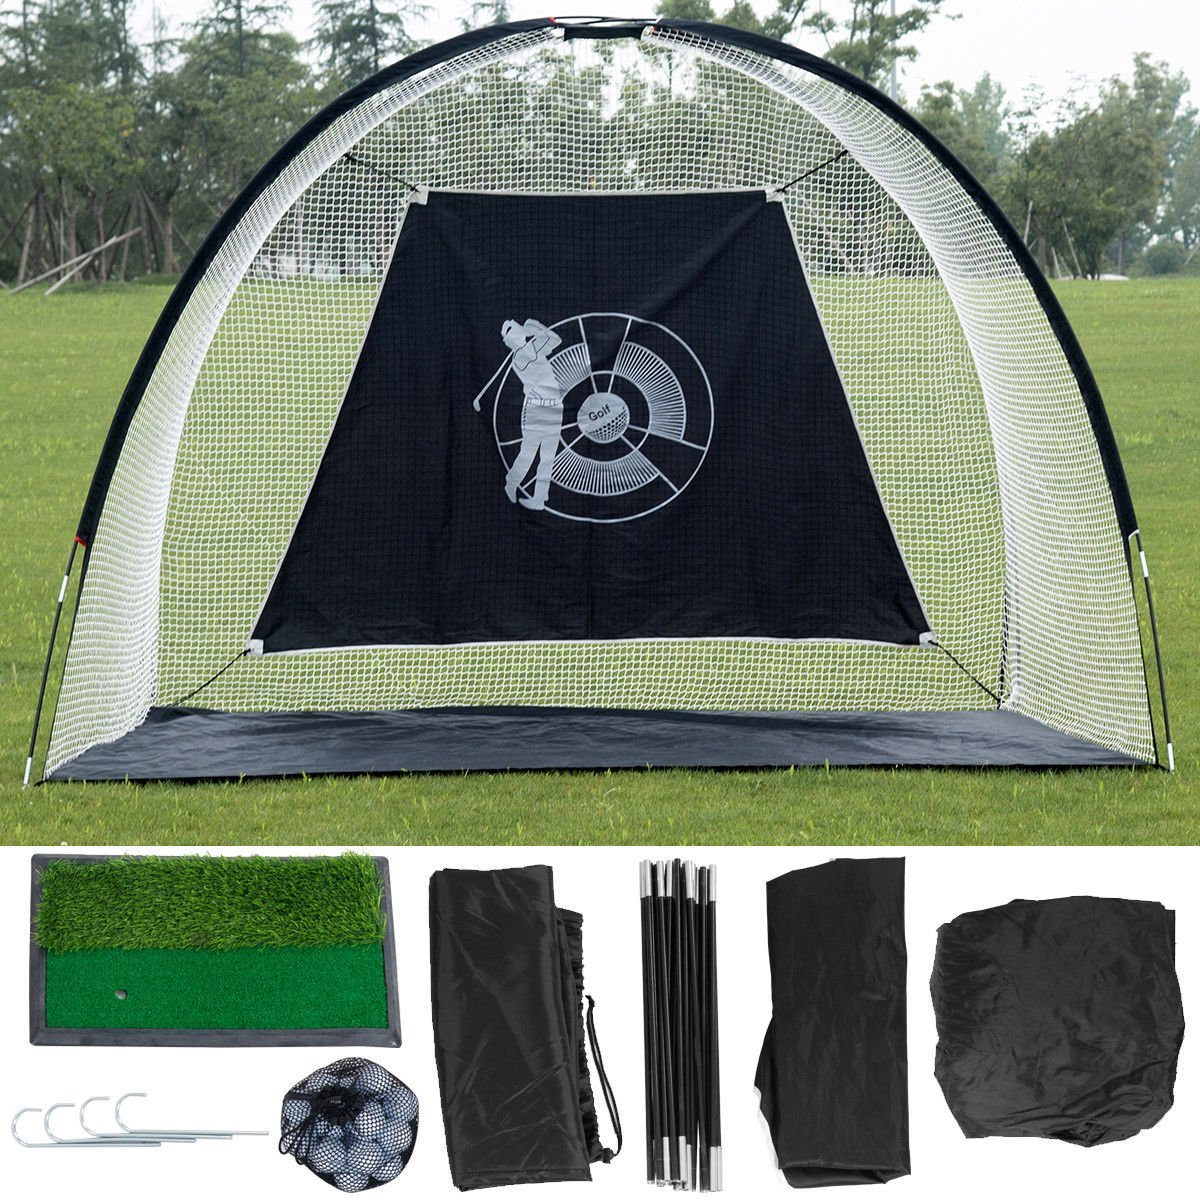 TANGKULA 10'Golf Net Indoor Outdoor Training with Target for Practice Hitting Cage Chipping